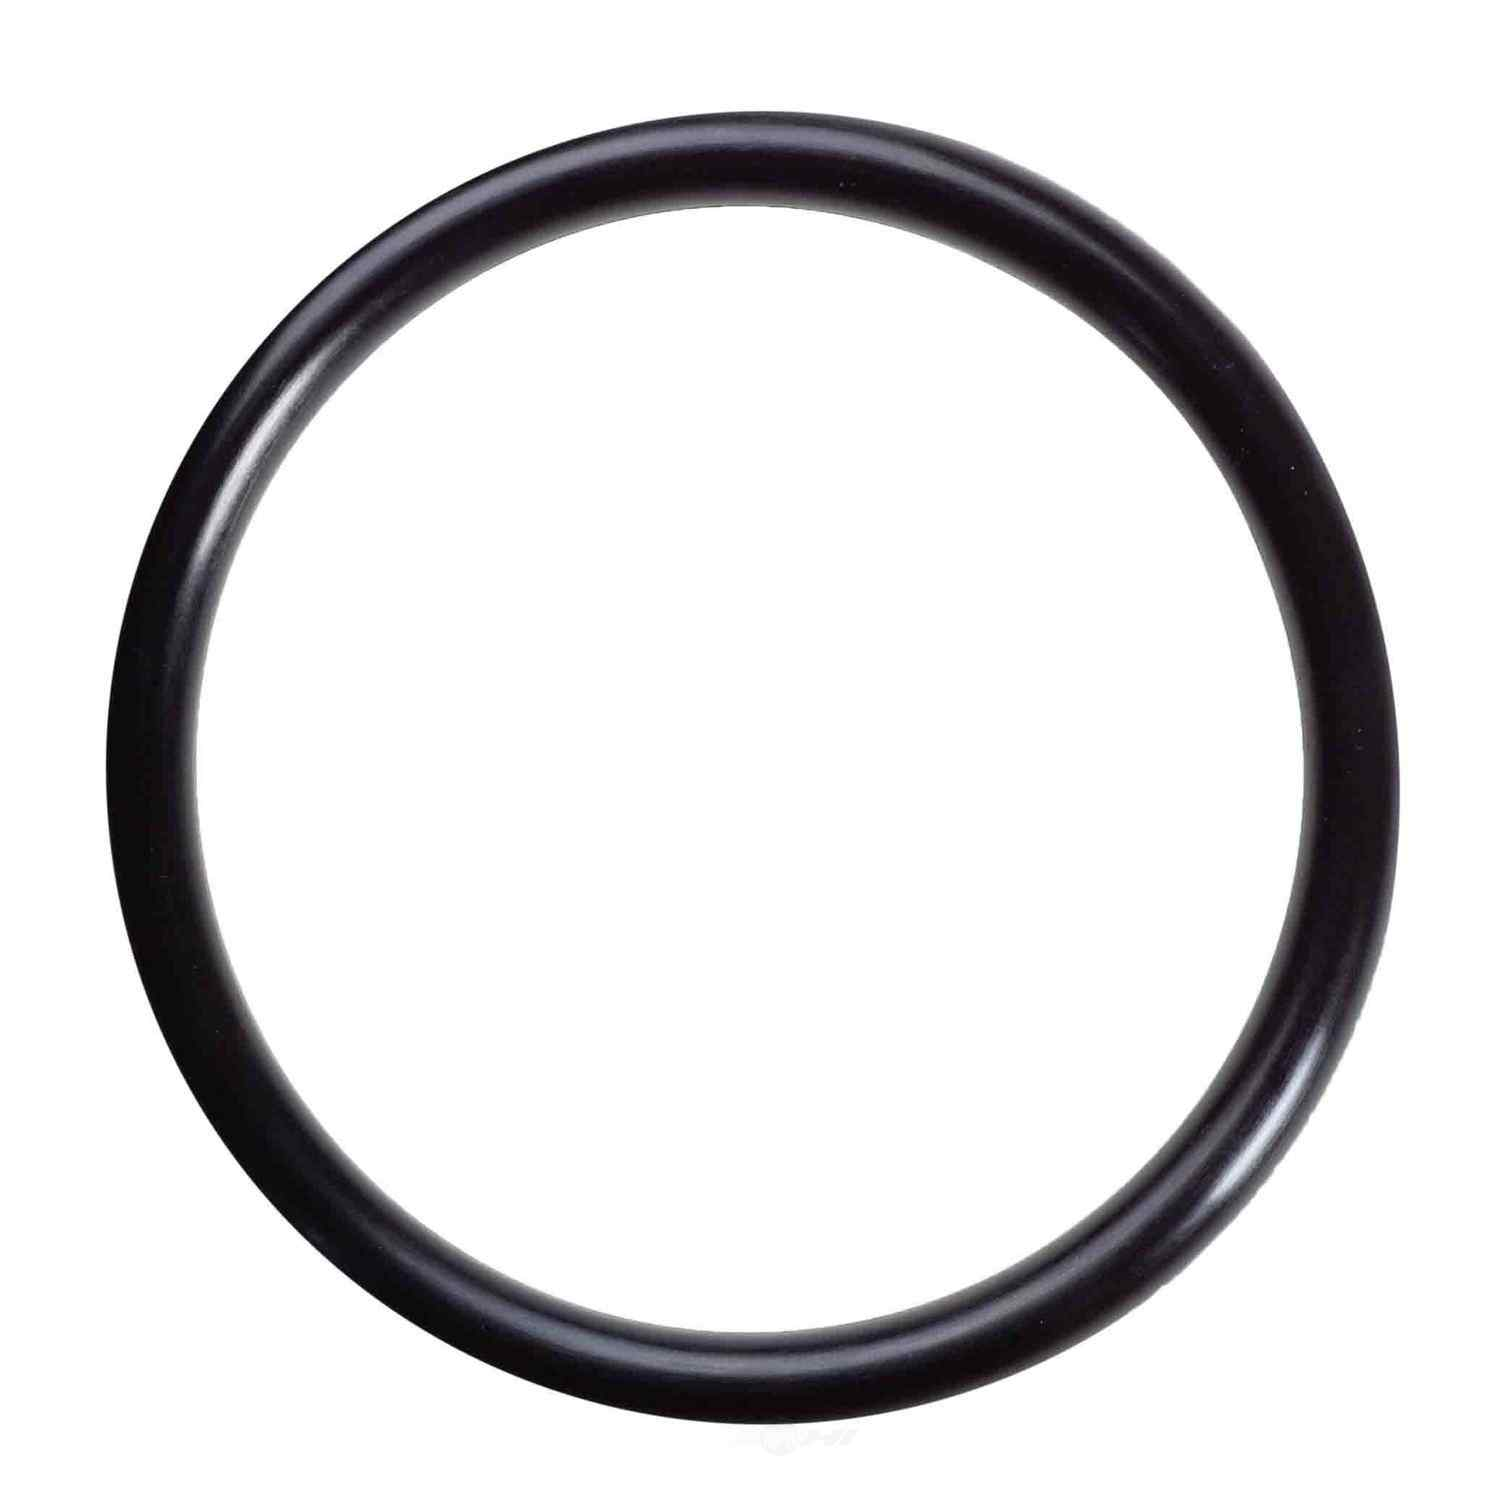 FELPRO - Engine Valve Stem Oil Seal - FEL 407